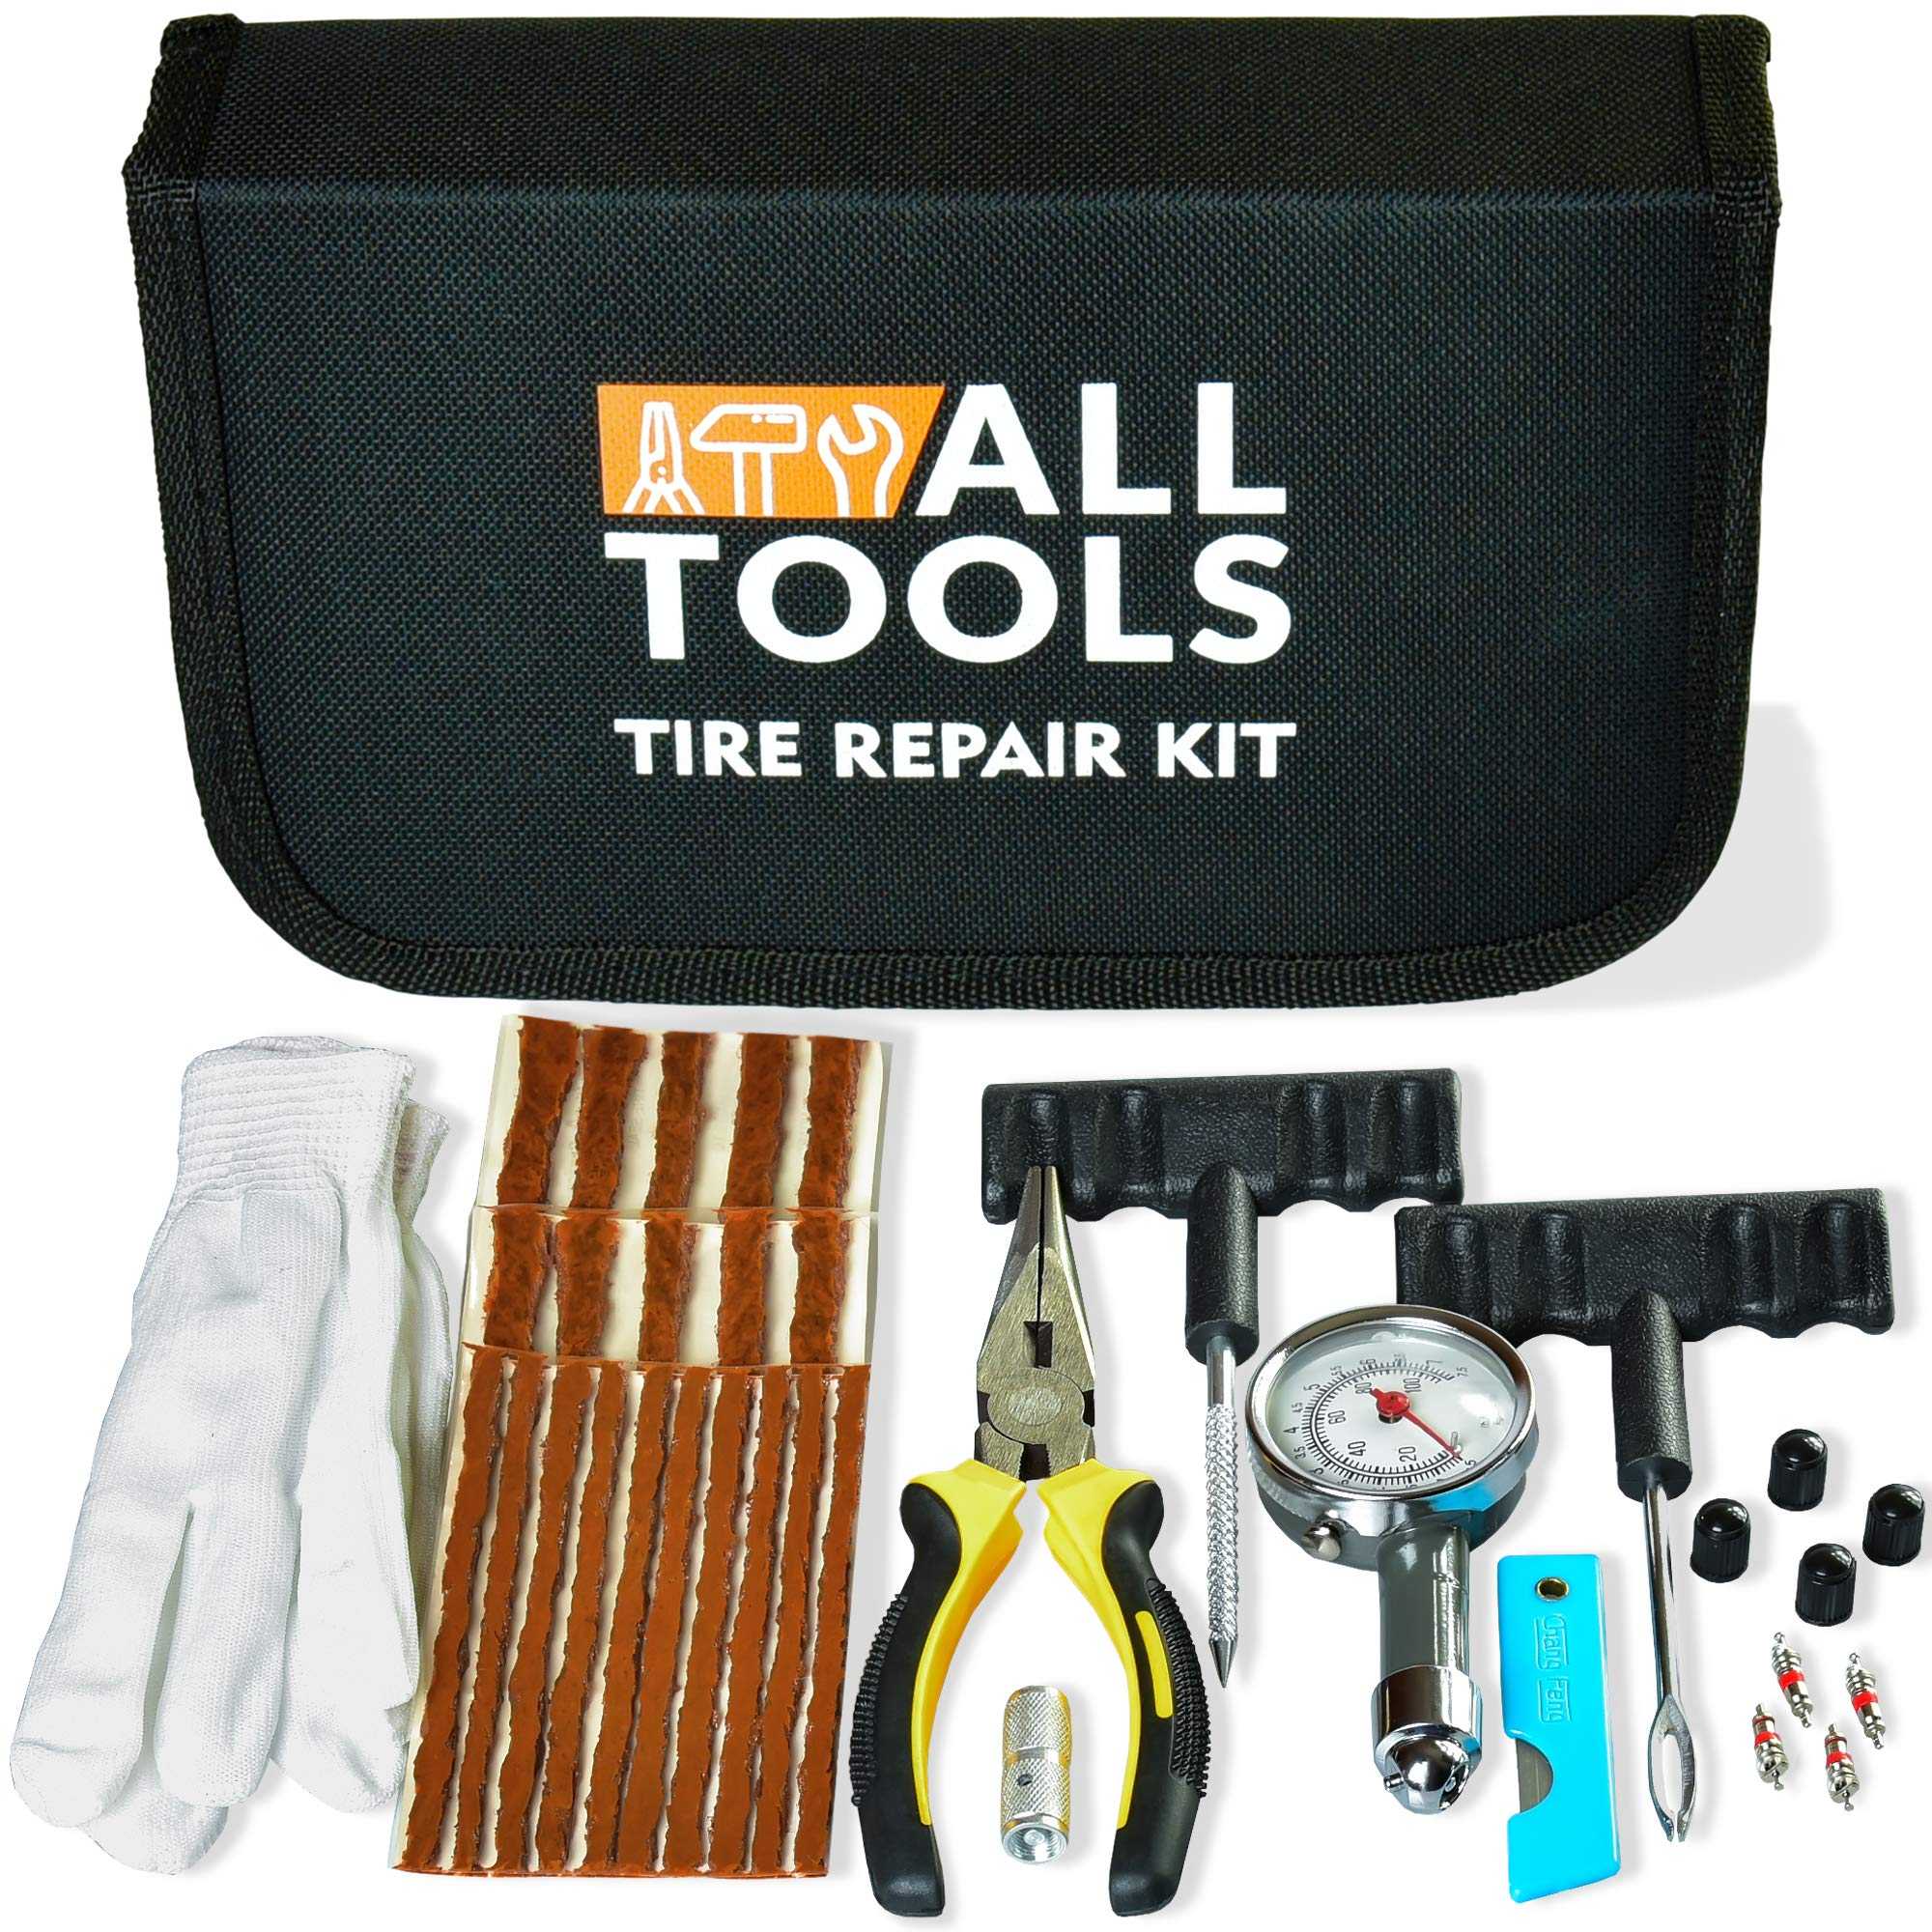 Heavy Duty Tire Repair Kit for Car Bike Motorcycle Trailer RV ATV Jeep Truck Tractor with Quality Tire Pressure Gauge, Gloves - Flat Tire Plug Tubeless Kit - Emergency Puncture Repair Patch Kit by ALLTOOLS